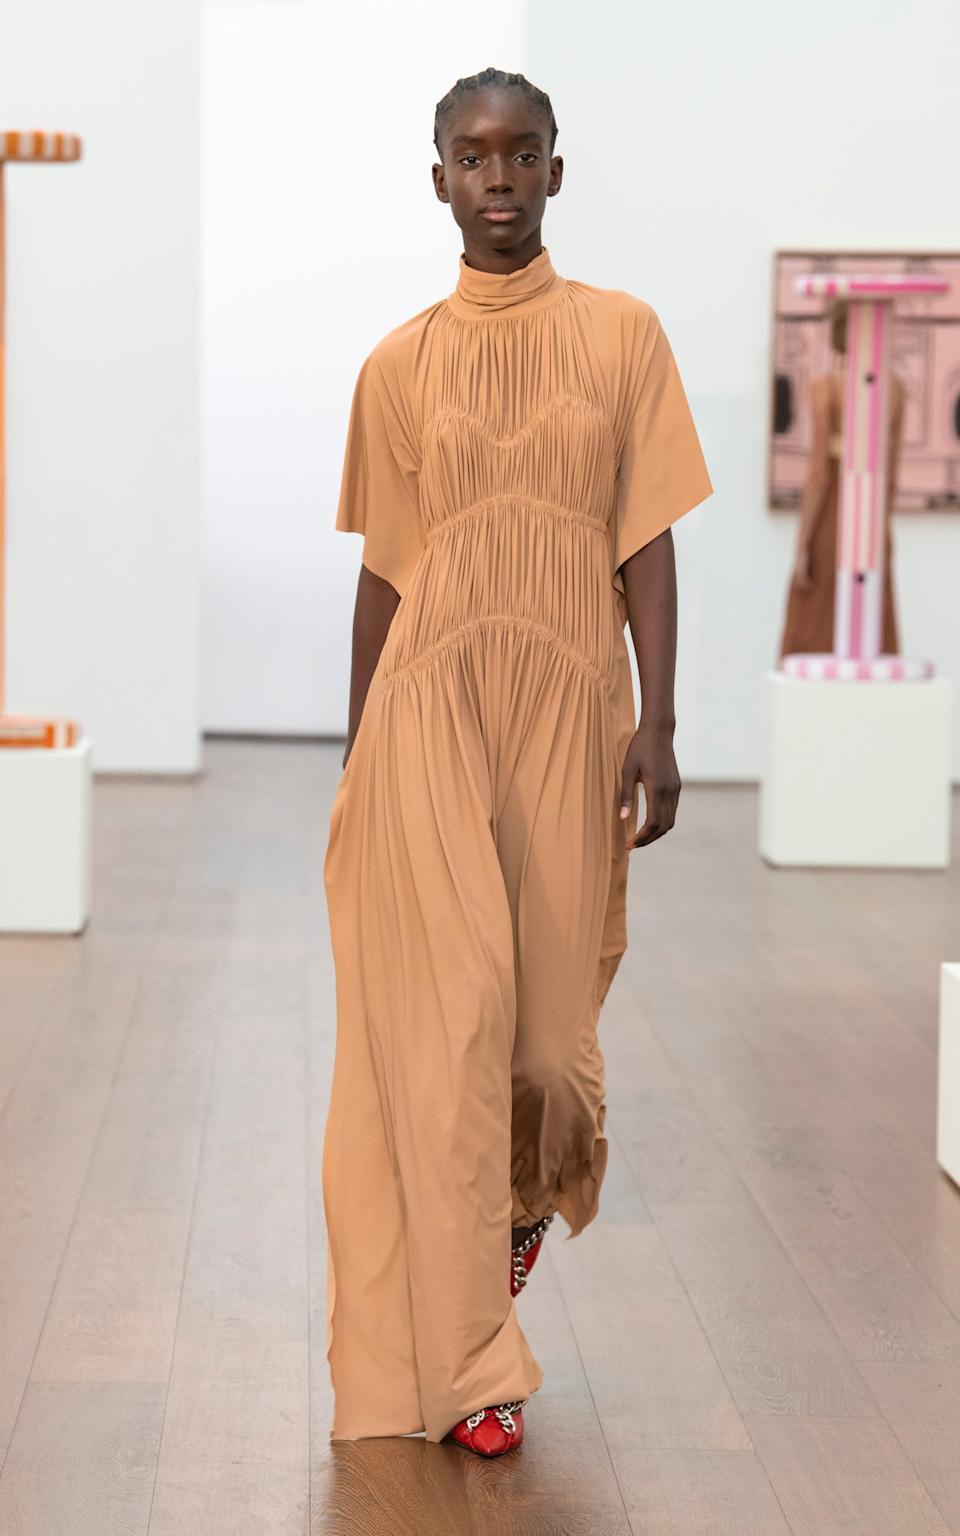 A look from Victoria Beckham's spring/ summer 2021 collection